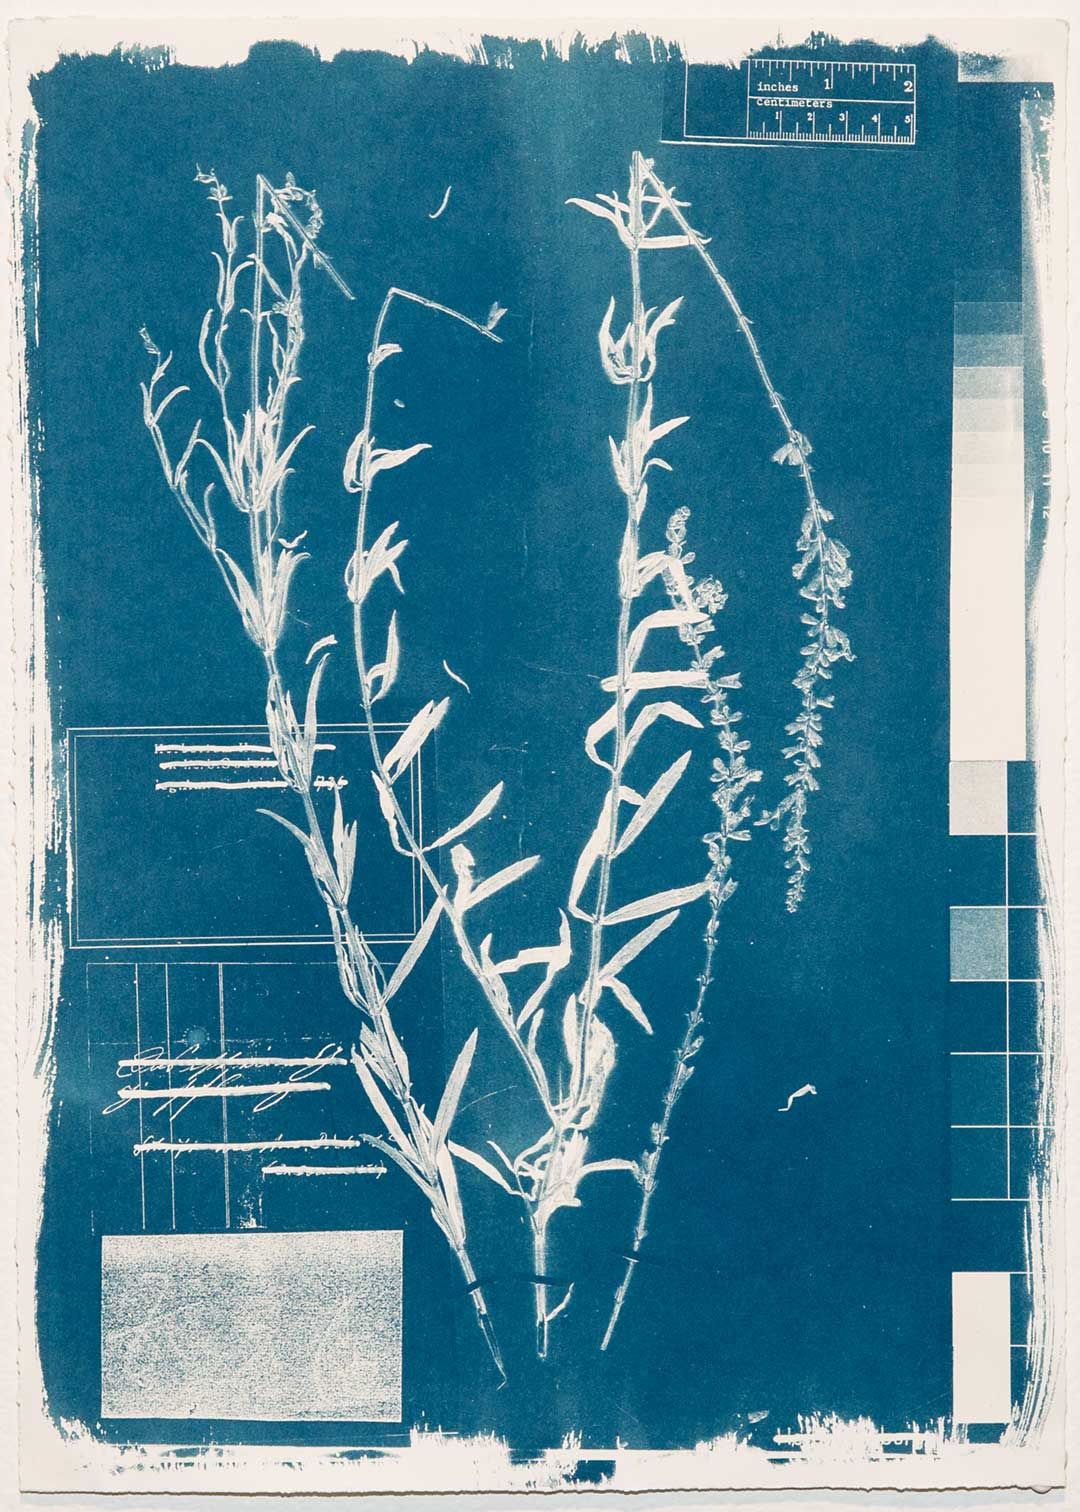 <b>Herbarium Hamburgense 2016-2017</b><br /> Cyanotypes on Canson Edition, edition of 10, each image 30 x 42 cm.